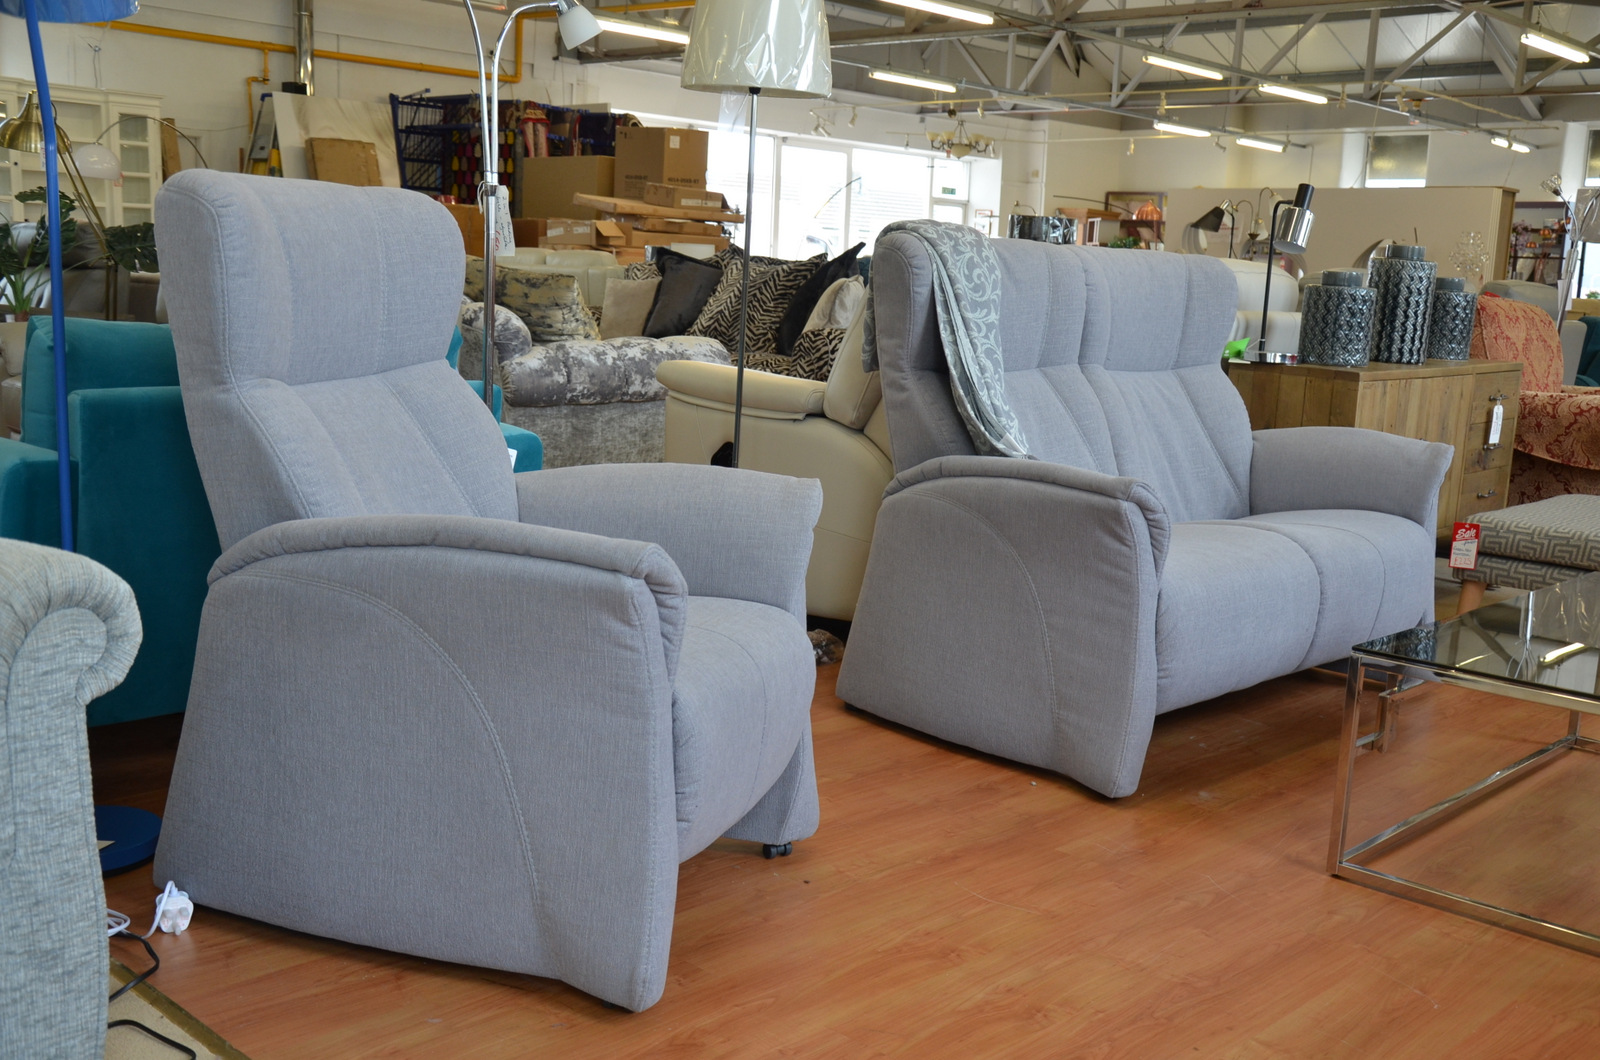 ex display sofas from Himolla